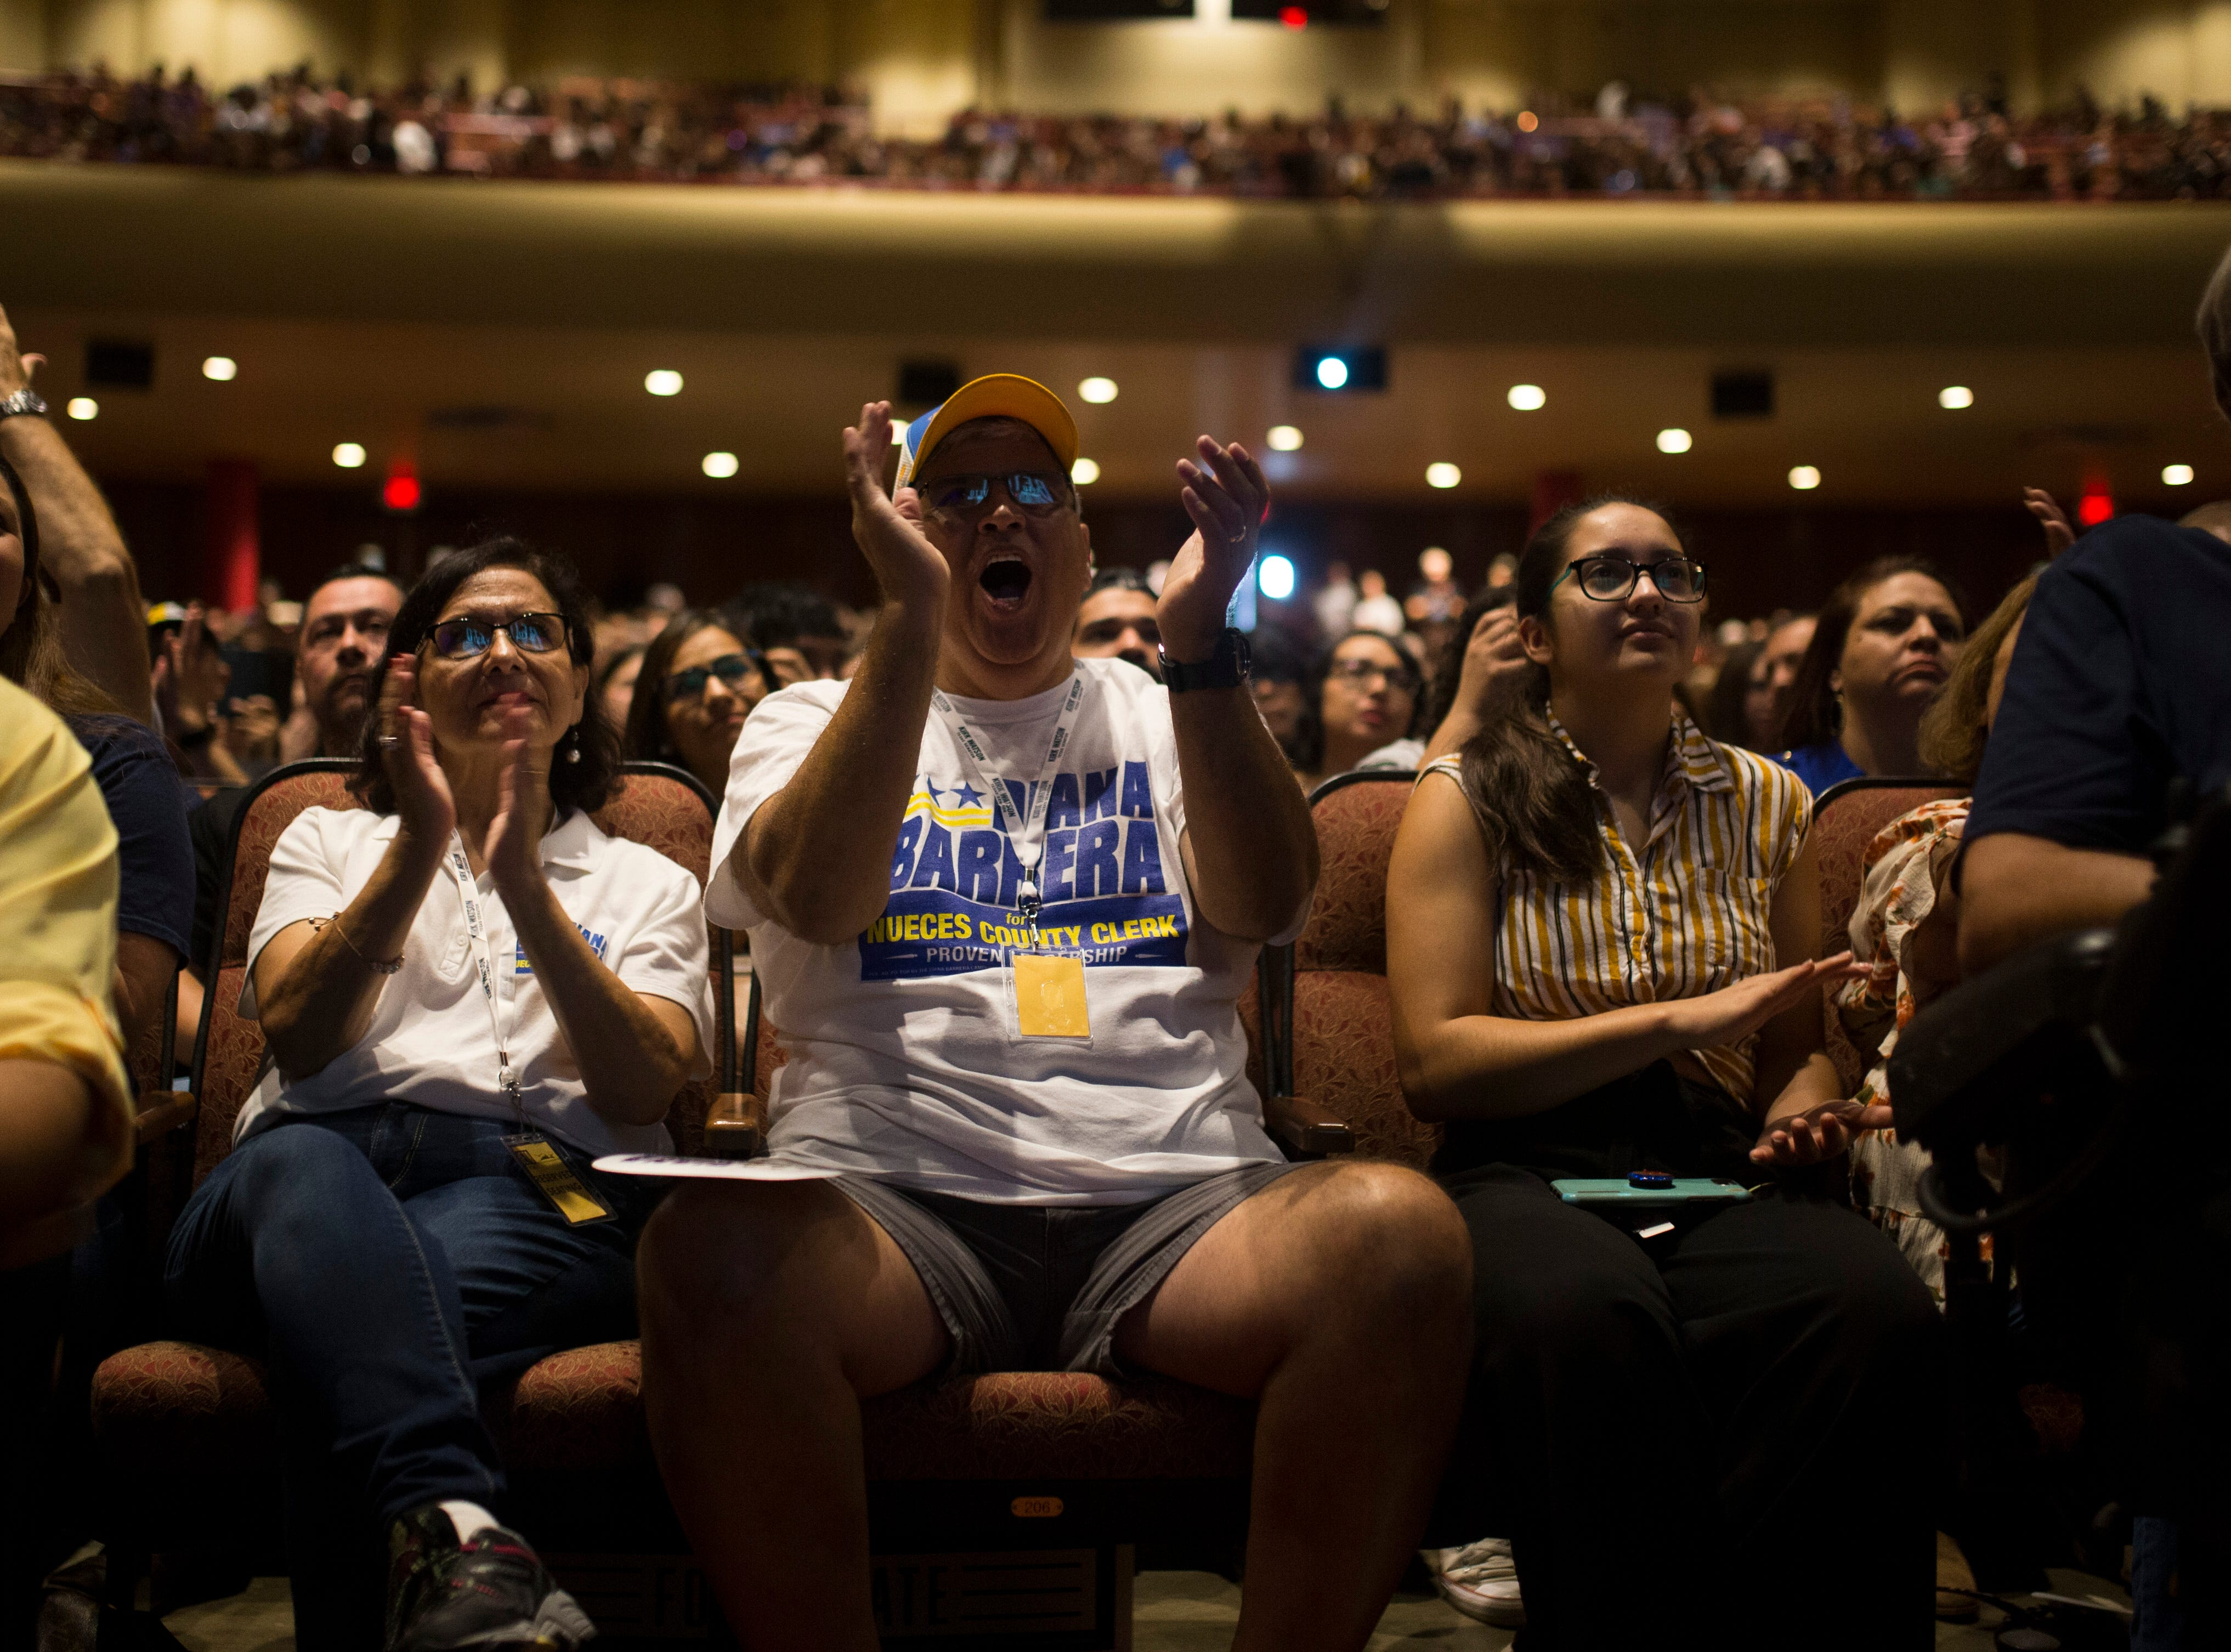 Supporters of U.S. Rep. Beto O'Rourke cheer as he speaks during a campaign event on Saturday, Oct. 13, 2018 at Del Mar College in Corpus Christi.